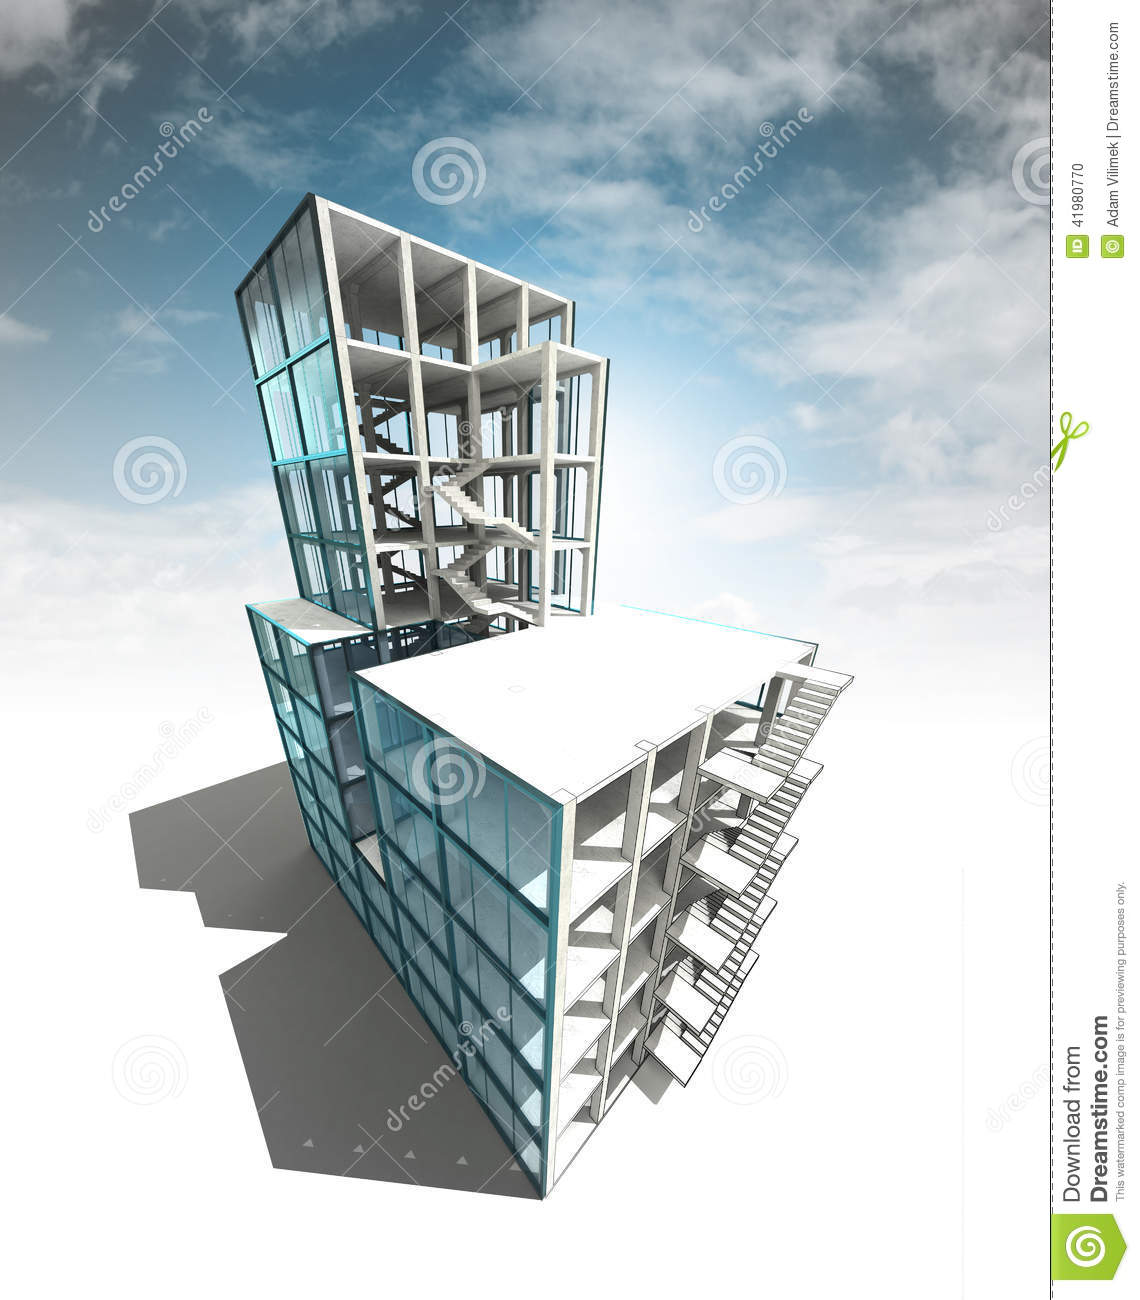 Concept of architectural building plan with sky render stock illustration image 41980770 - Build house plans online free concept ...